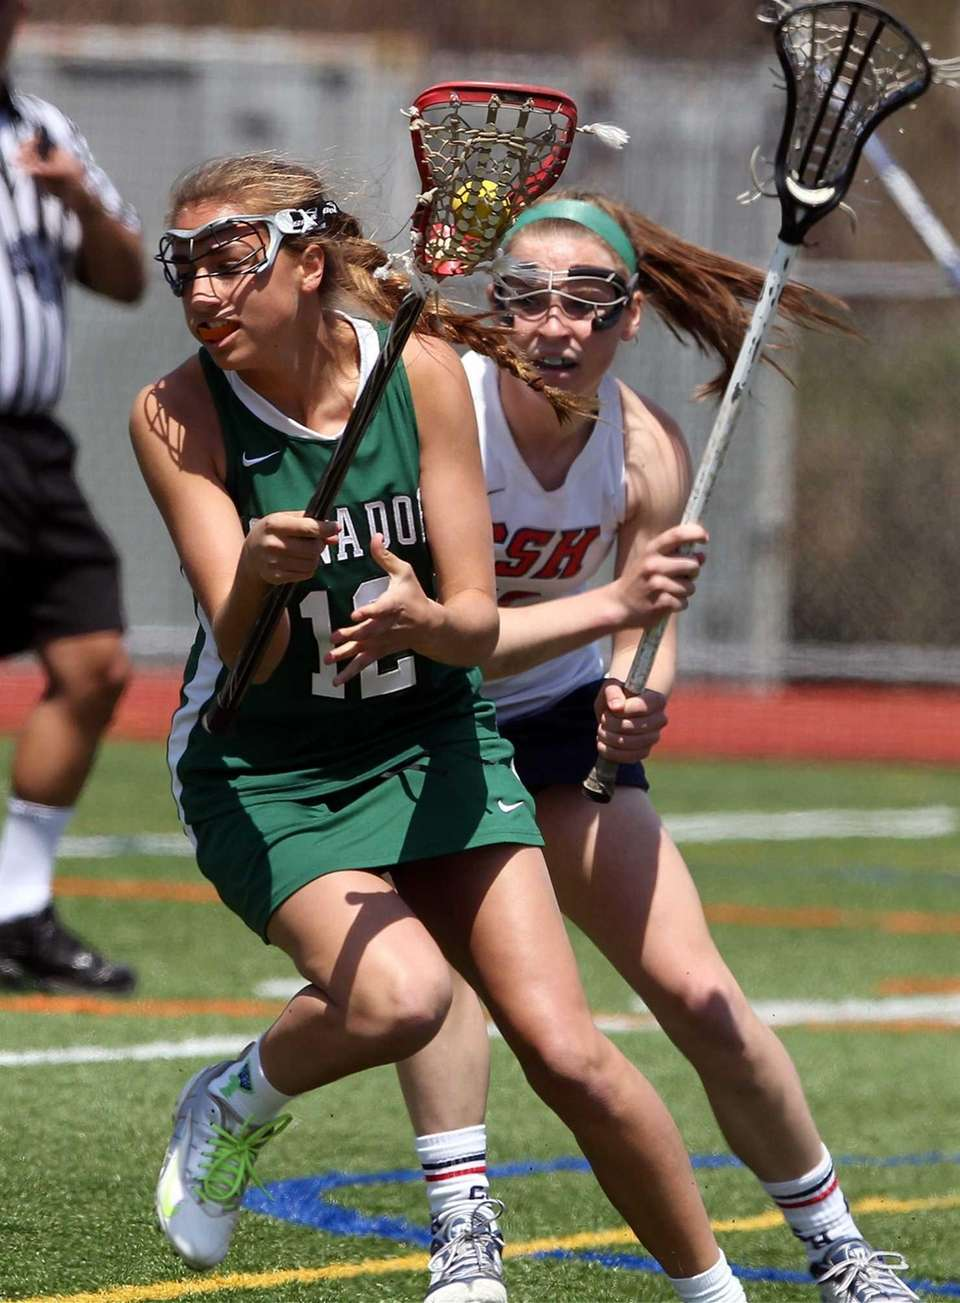 Harborfields' Carli Clemente controls the ball. (April 27,